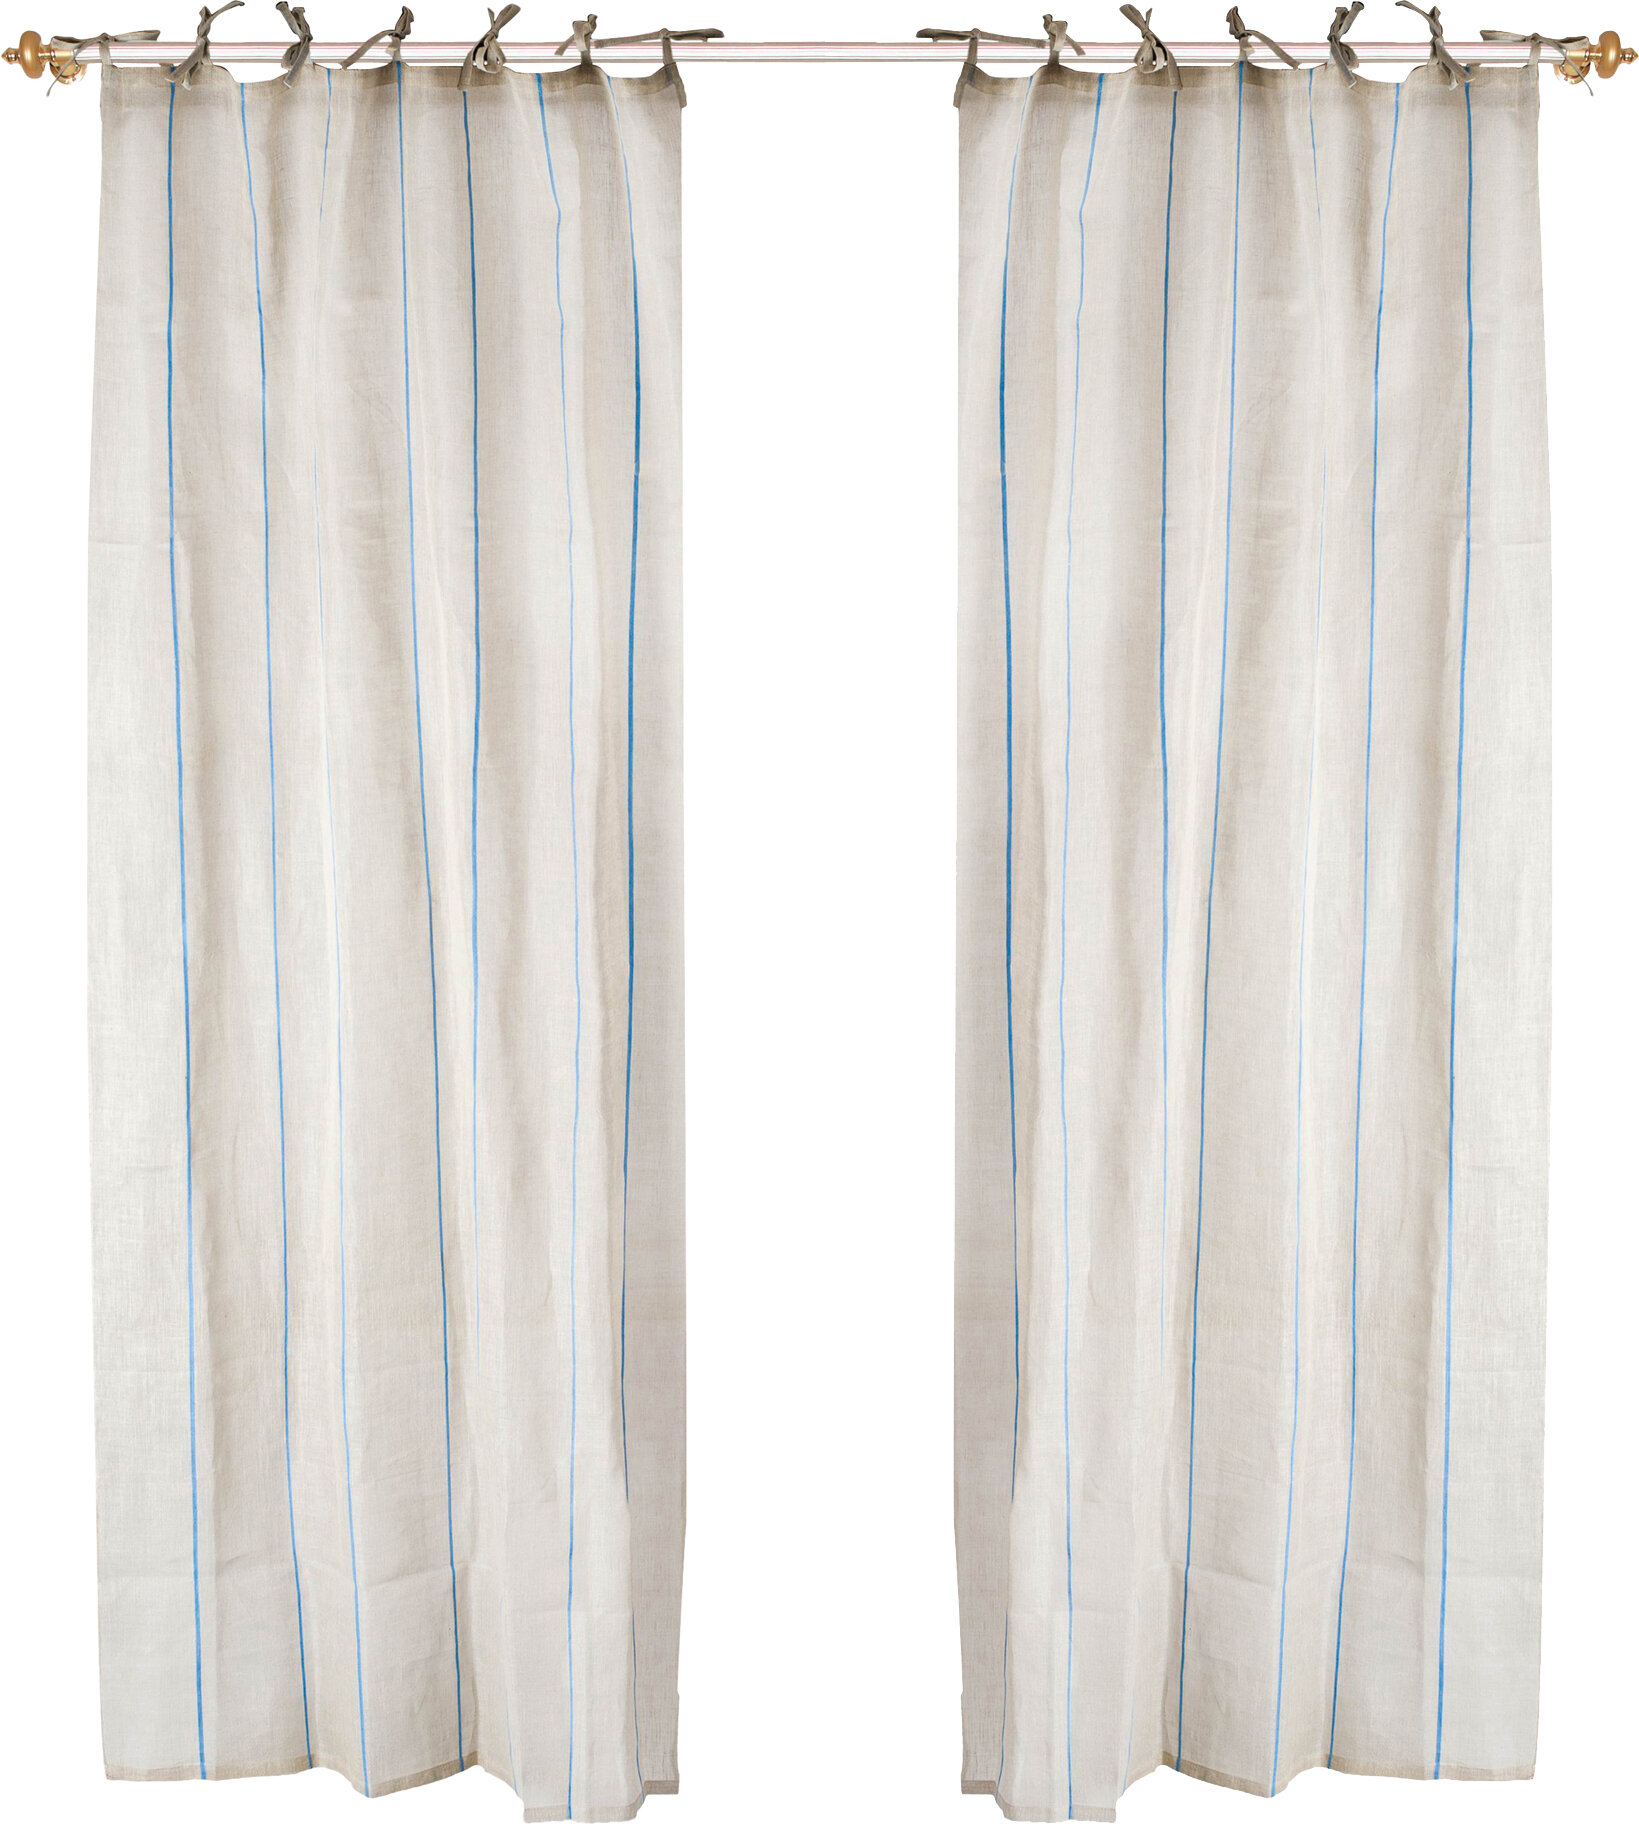 curtains l x white tietop top drapes designs curtain linen tie w